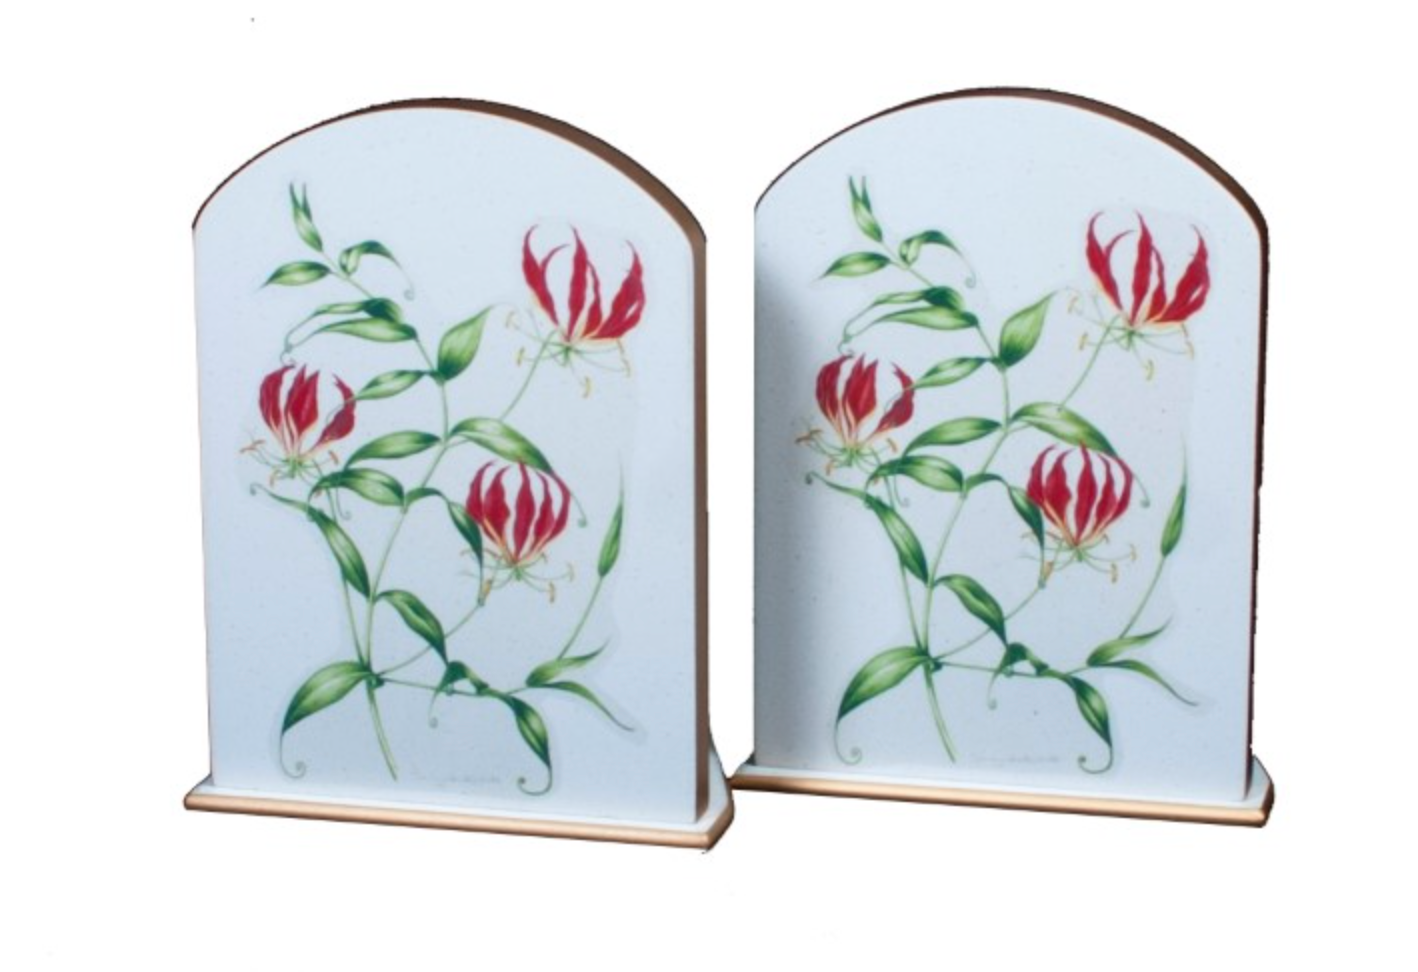 Pair of Bookends: Flame Lily